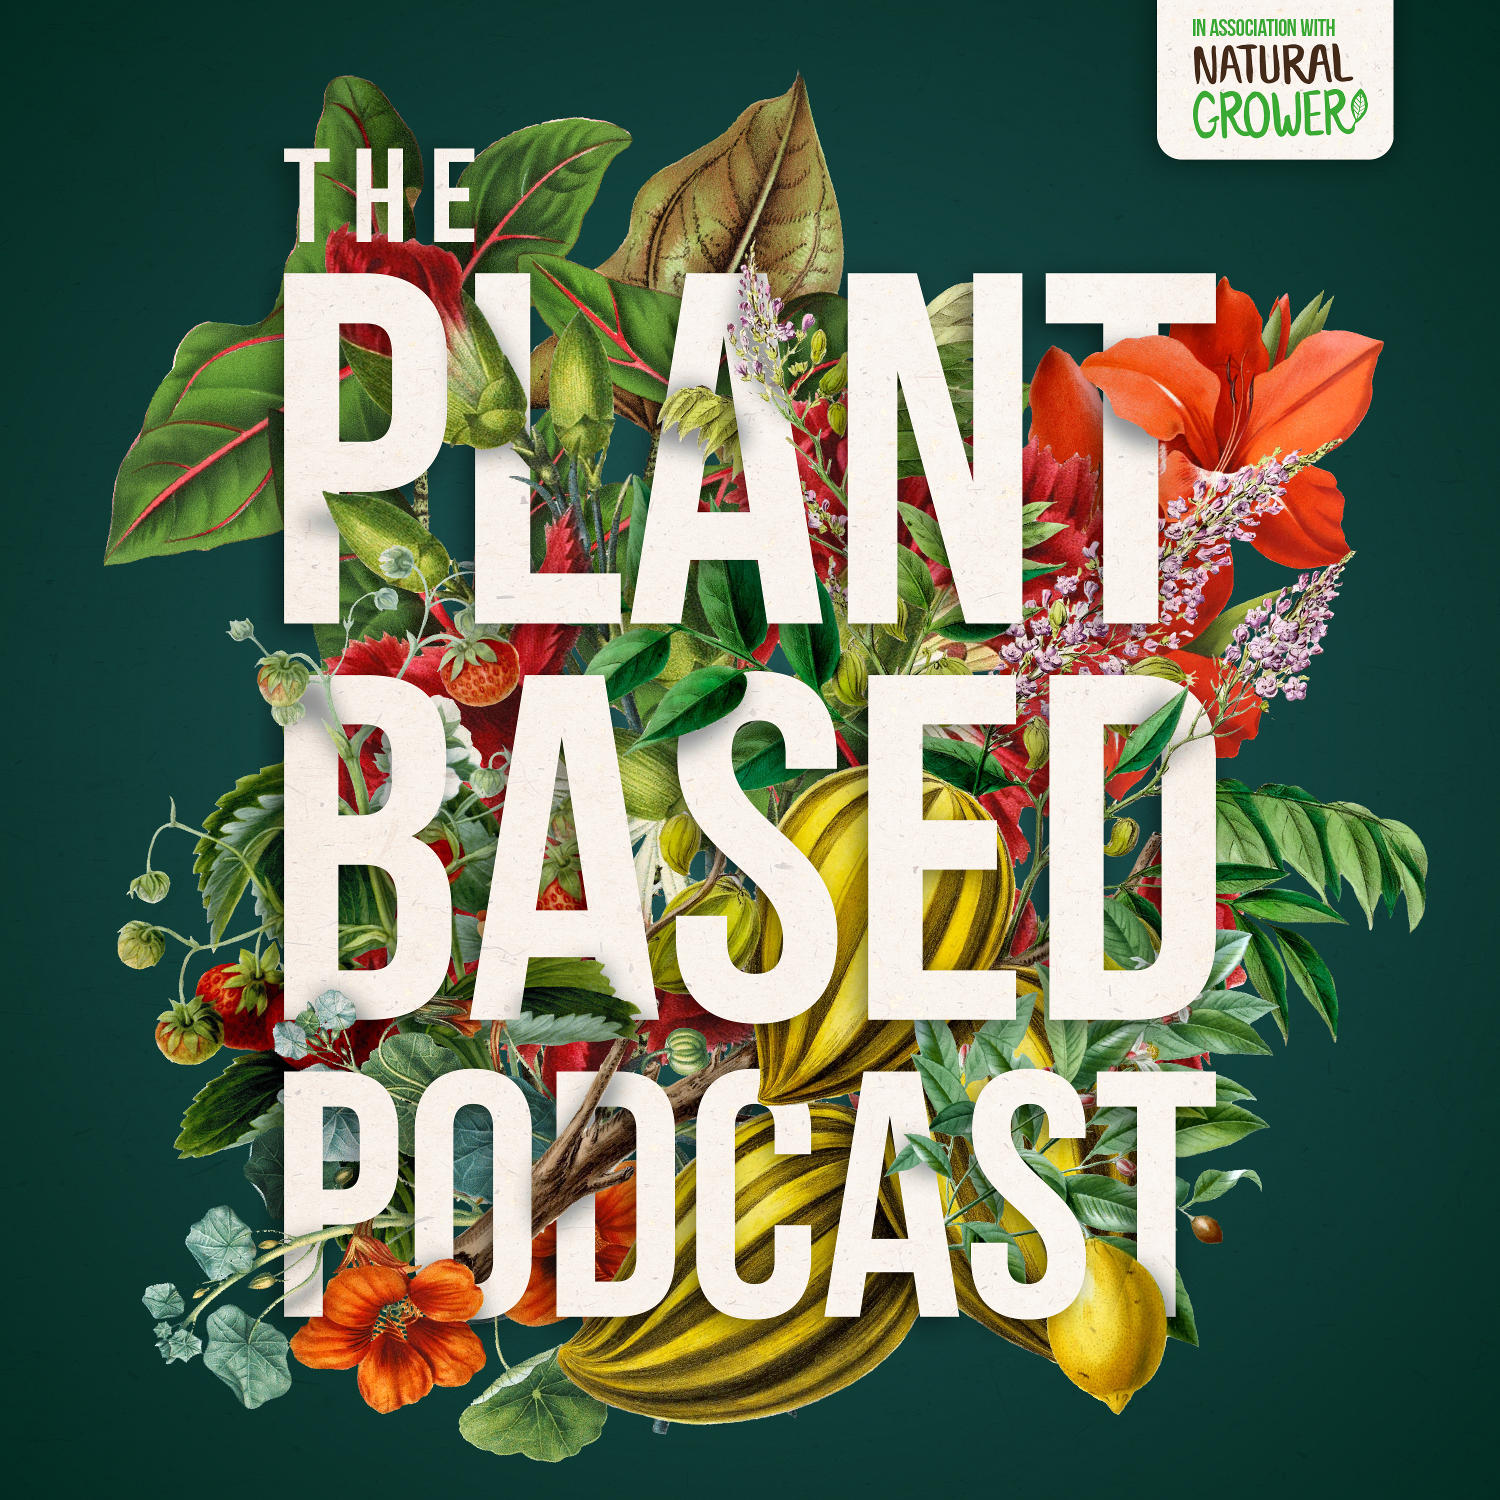 The Plant Based Podcast S3 - Inbetweeny Episode 6: Love and hate in the plant world